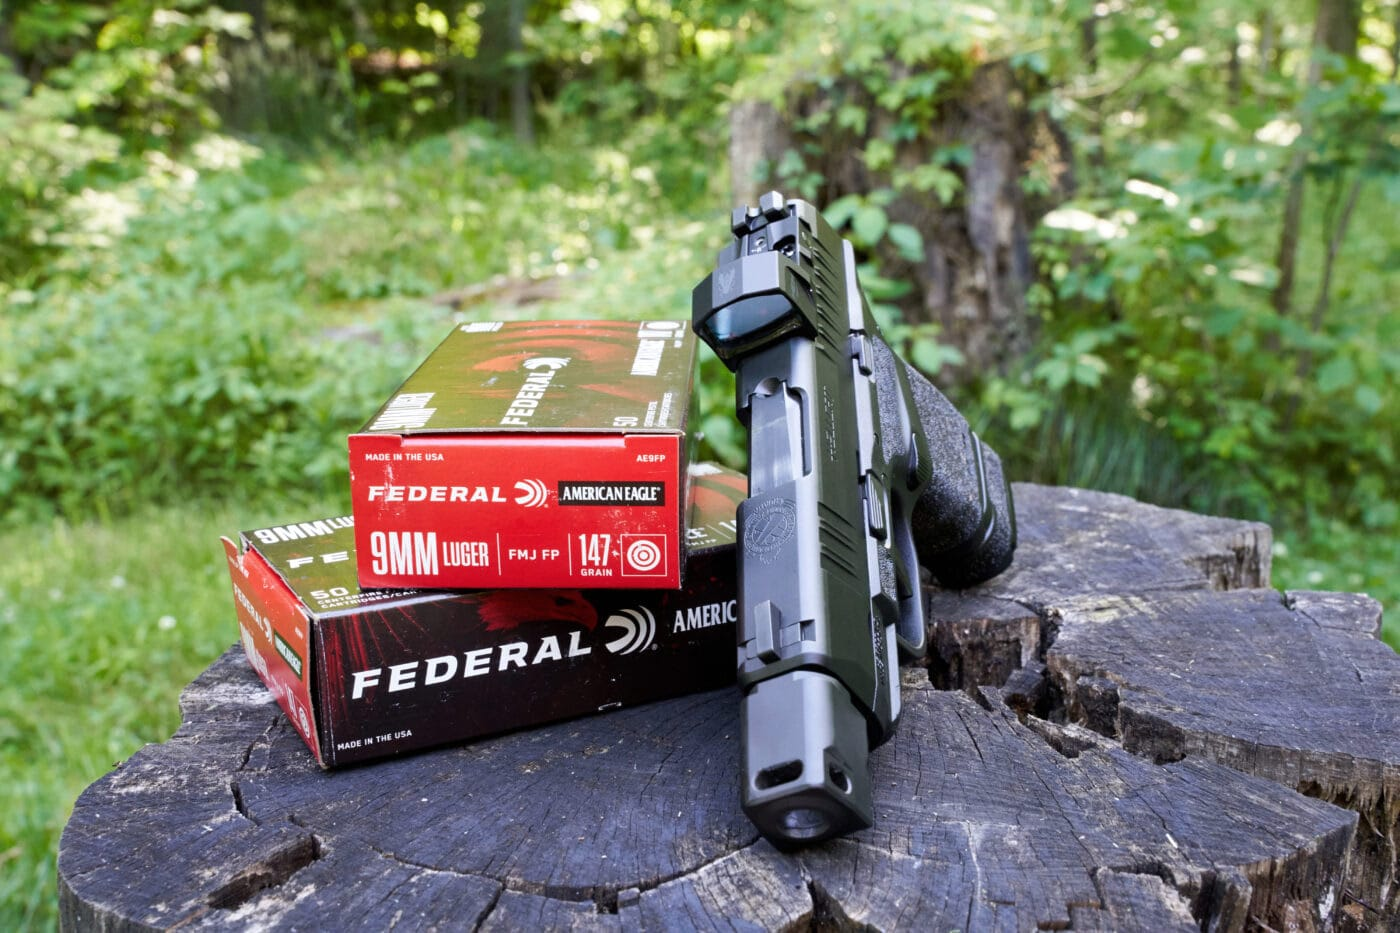 Federal ammo for testing